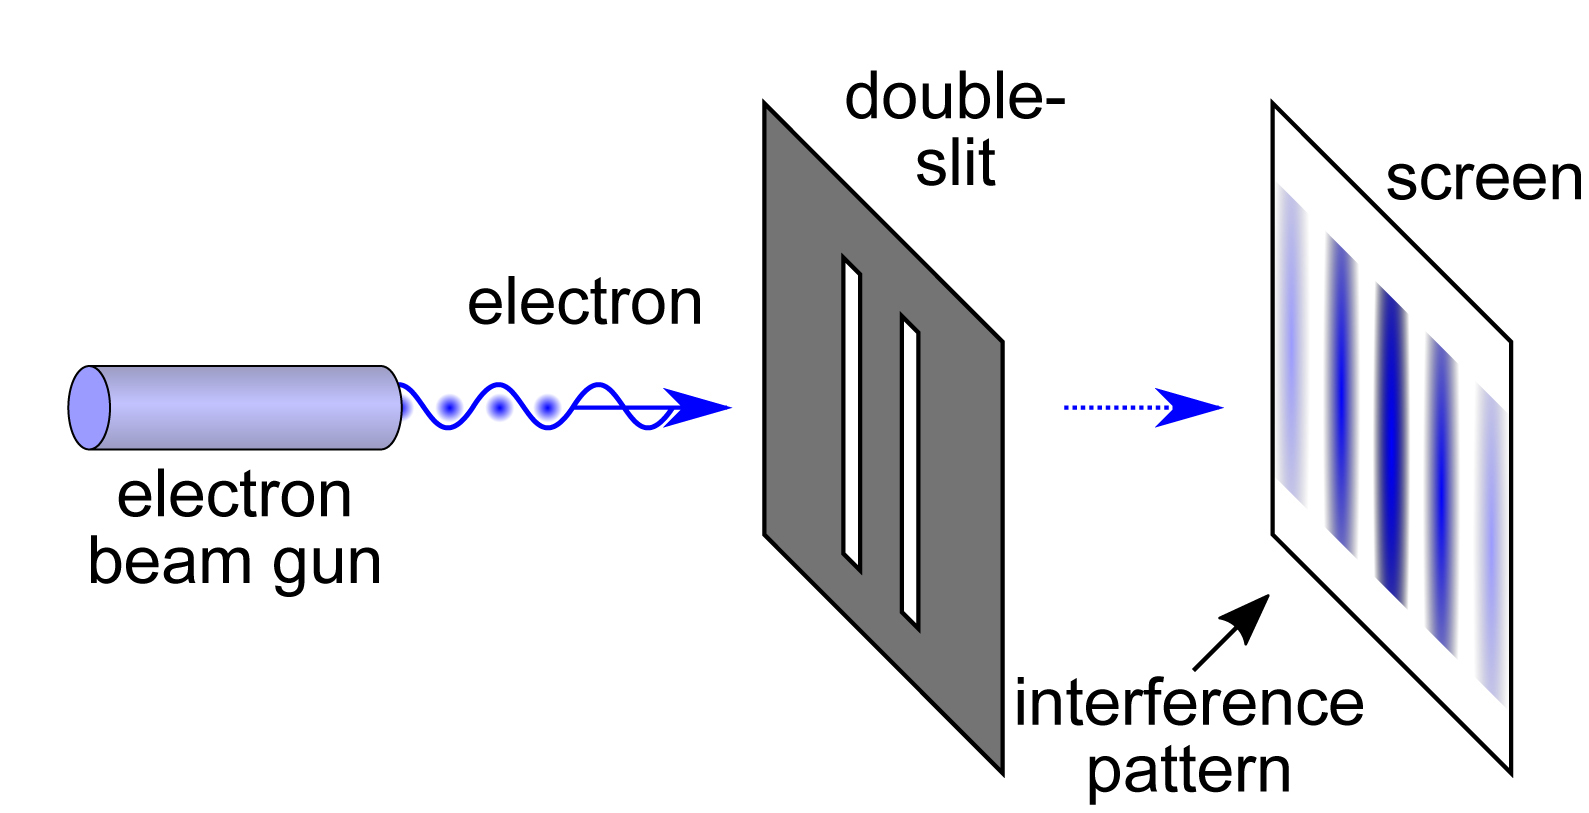 Schematic illustration of a double-slit experiment with an electron beam gun. The QUPLAS researchers conducted their experiment with positrons (antimatter) and multiple slits (grating). Due to the wave behavior of the particles, an interference pattern appears on the observation screen (nuclear emulsion detector). Image: Wikimedia Commons